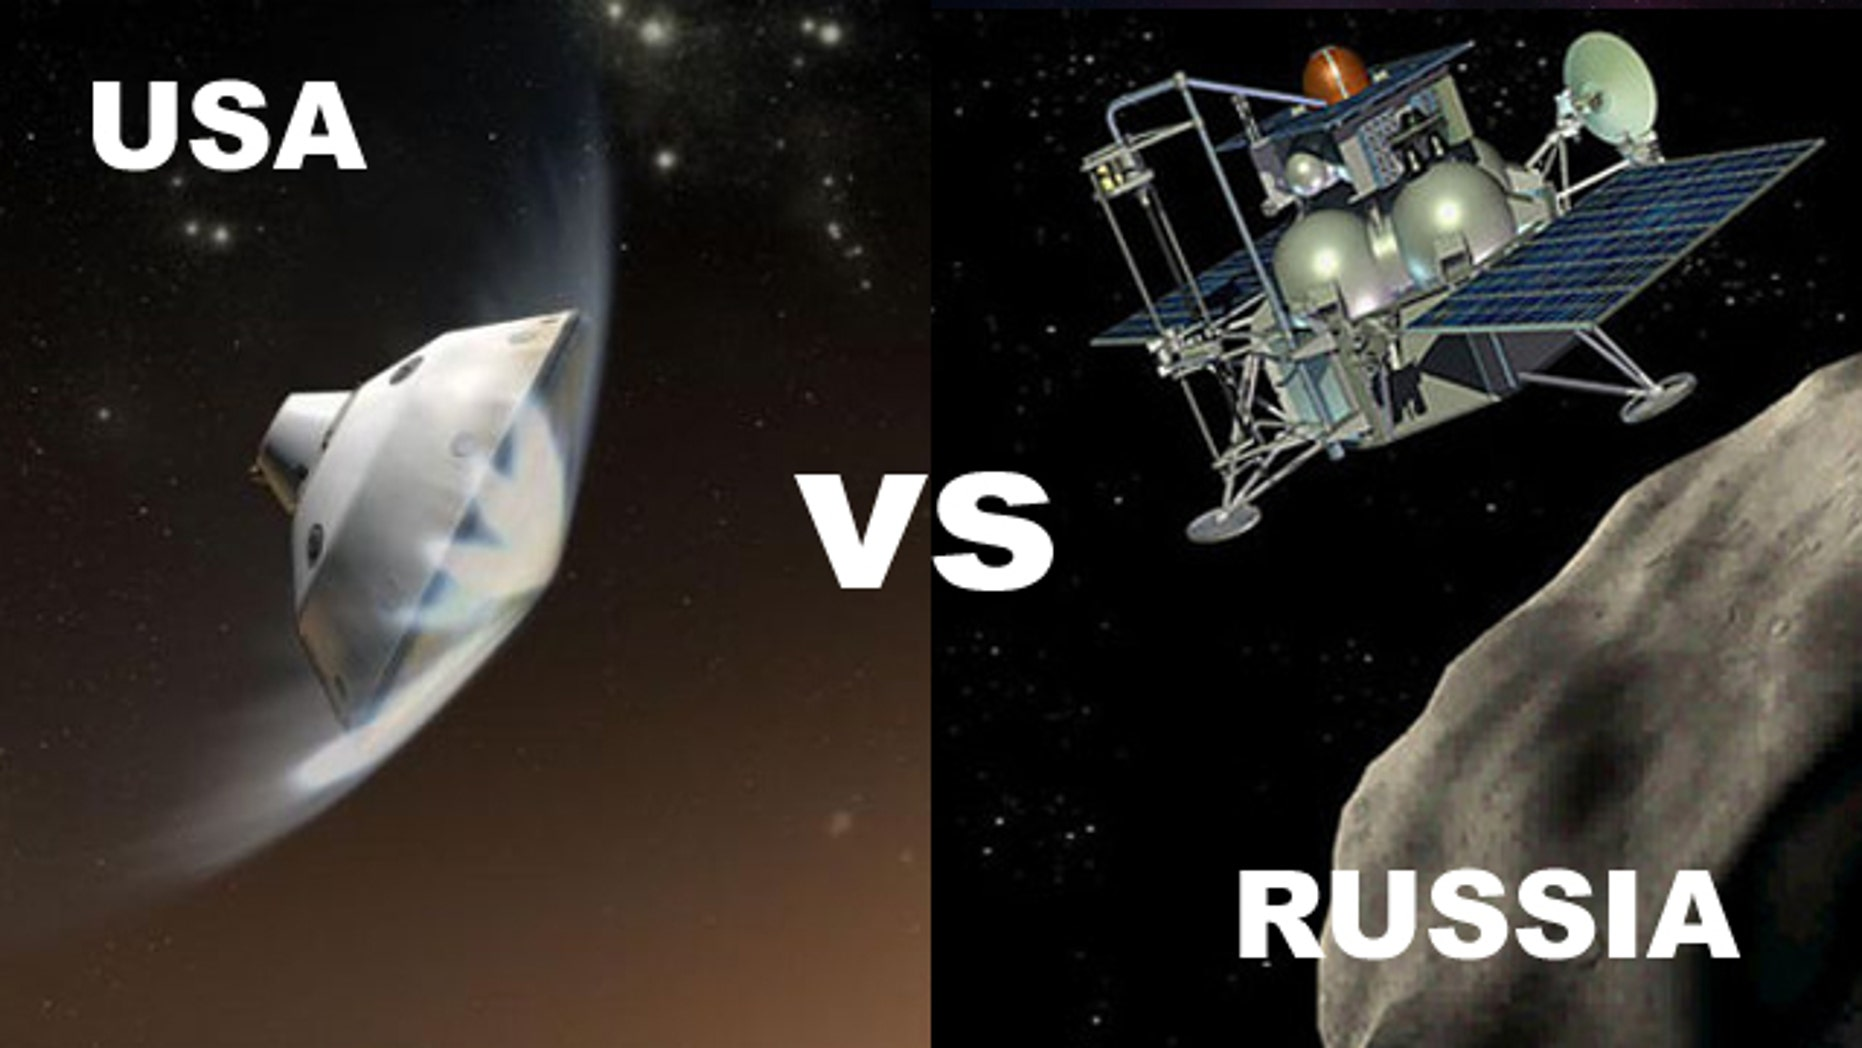 NASA will launch its newest Mars lander on Saturday; Russia hopes to salvage its mission to Mars moon Phobos as well. Is a race to Mars about to begin?